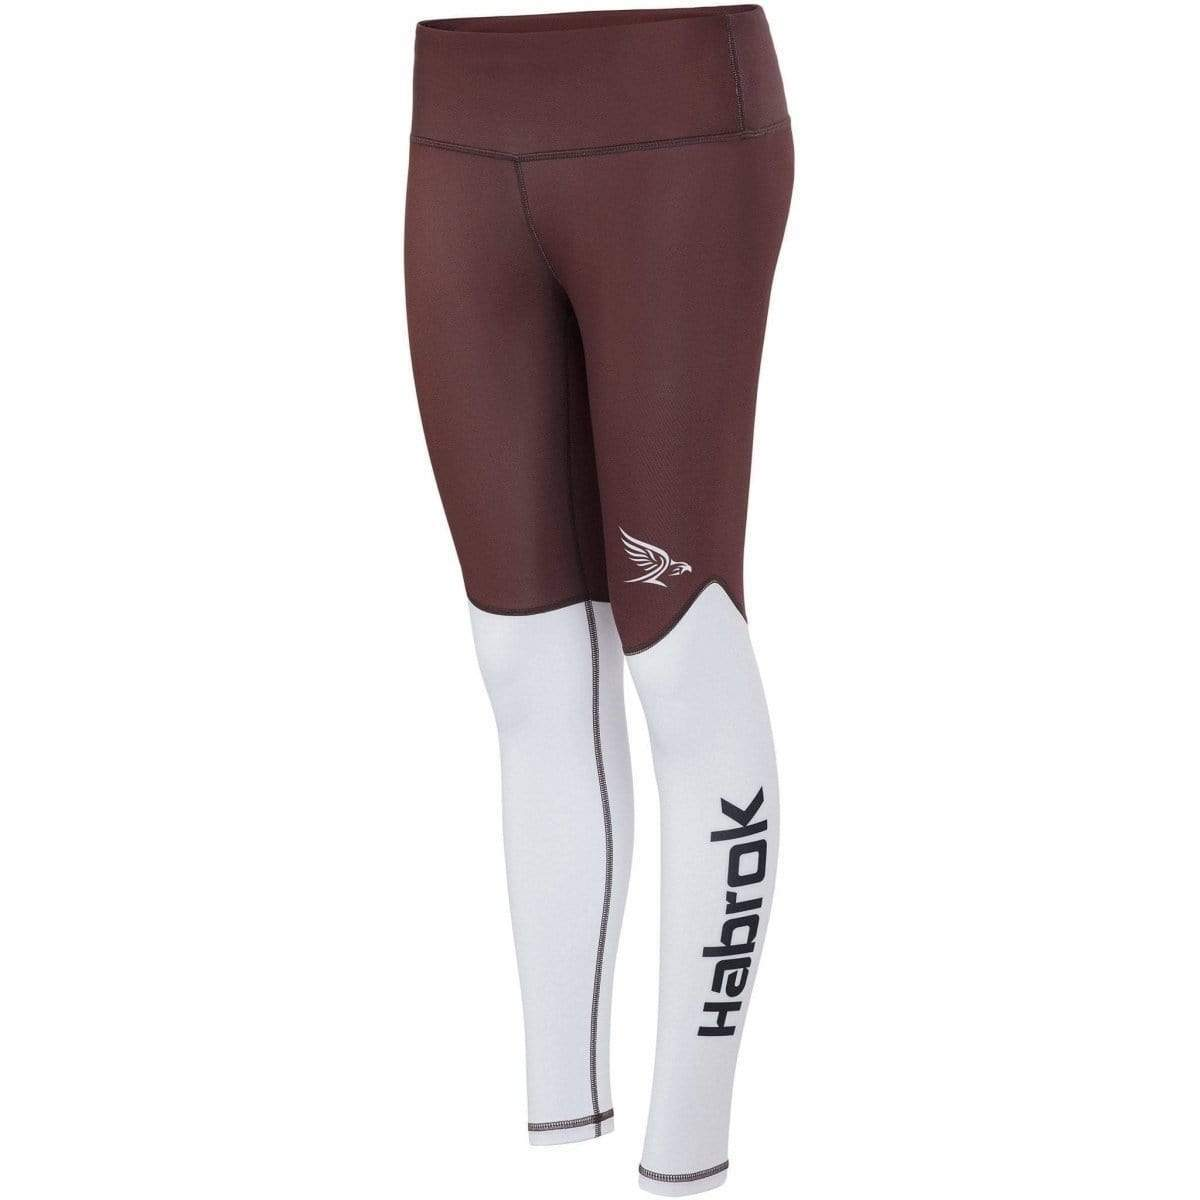 Habrok Spats XS / BROWN Transform 2.5 | Compression Pants | Women